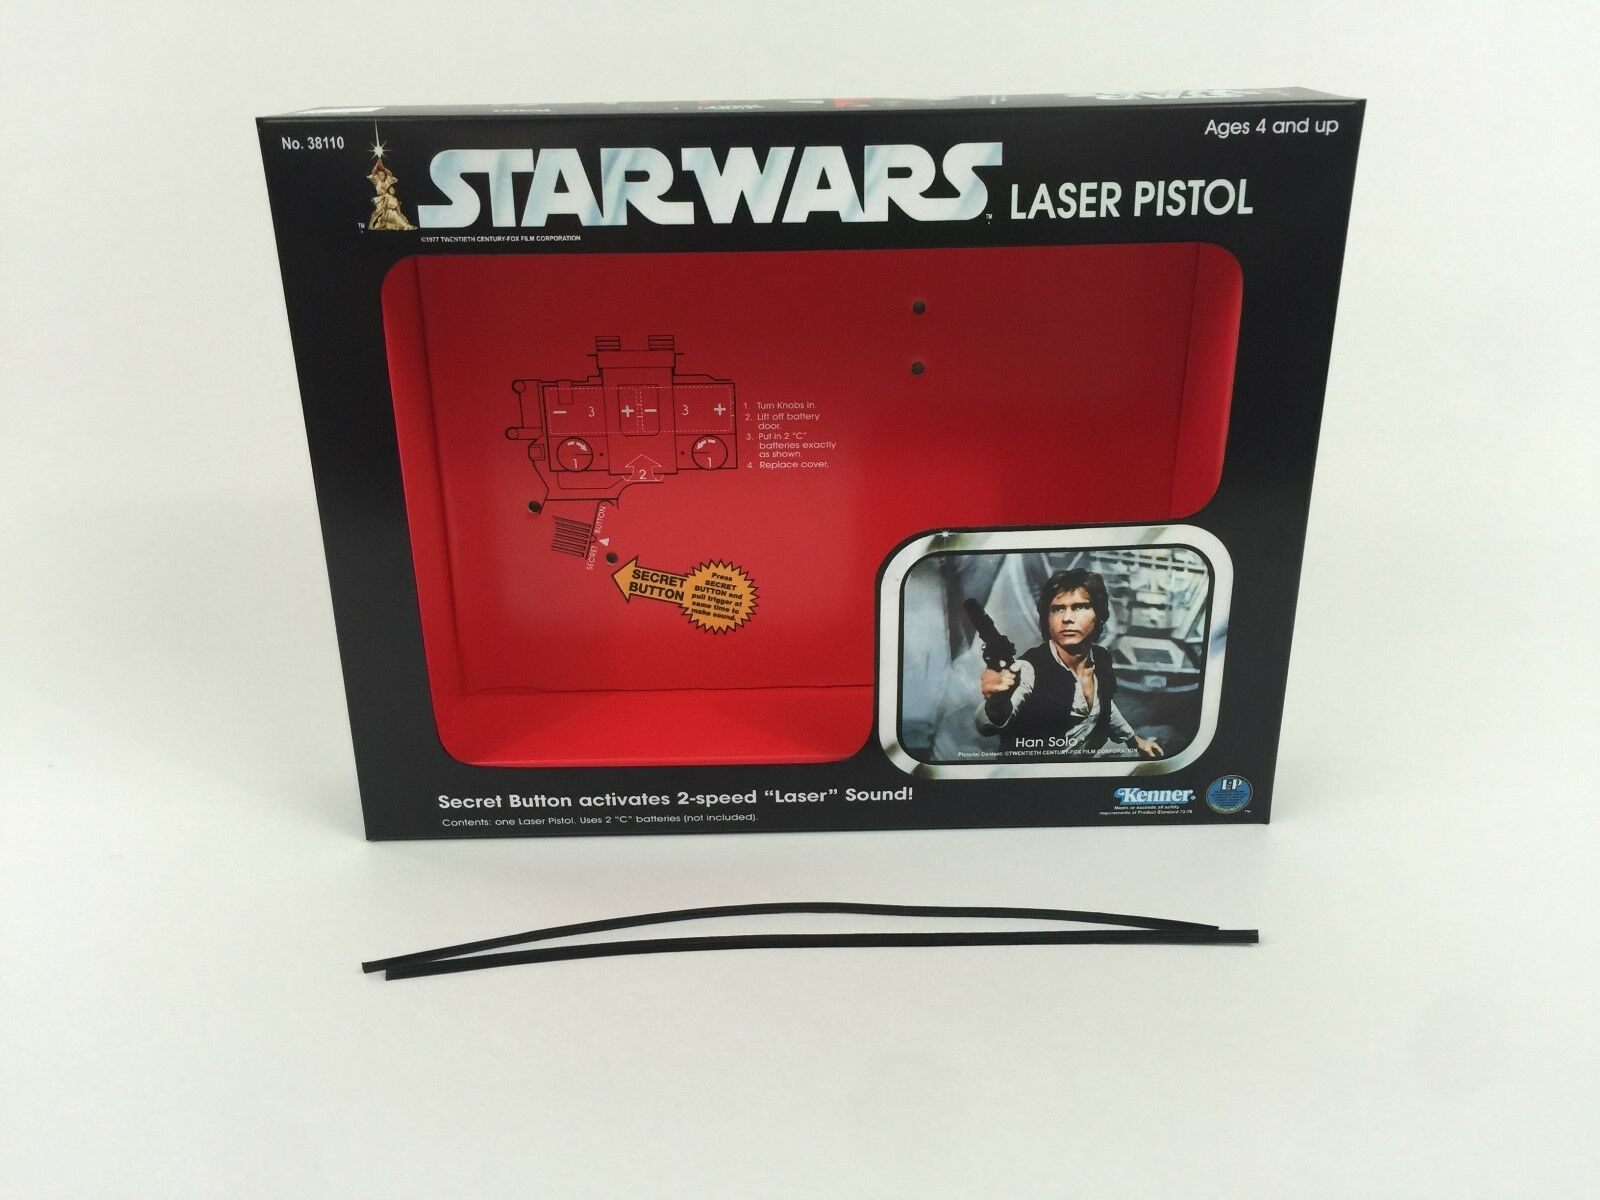 Replacement vintage star wars han solo laser pistol box and inserts